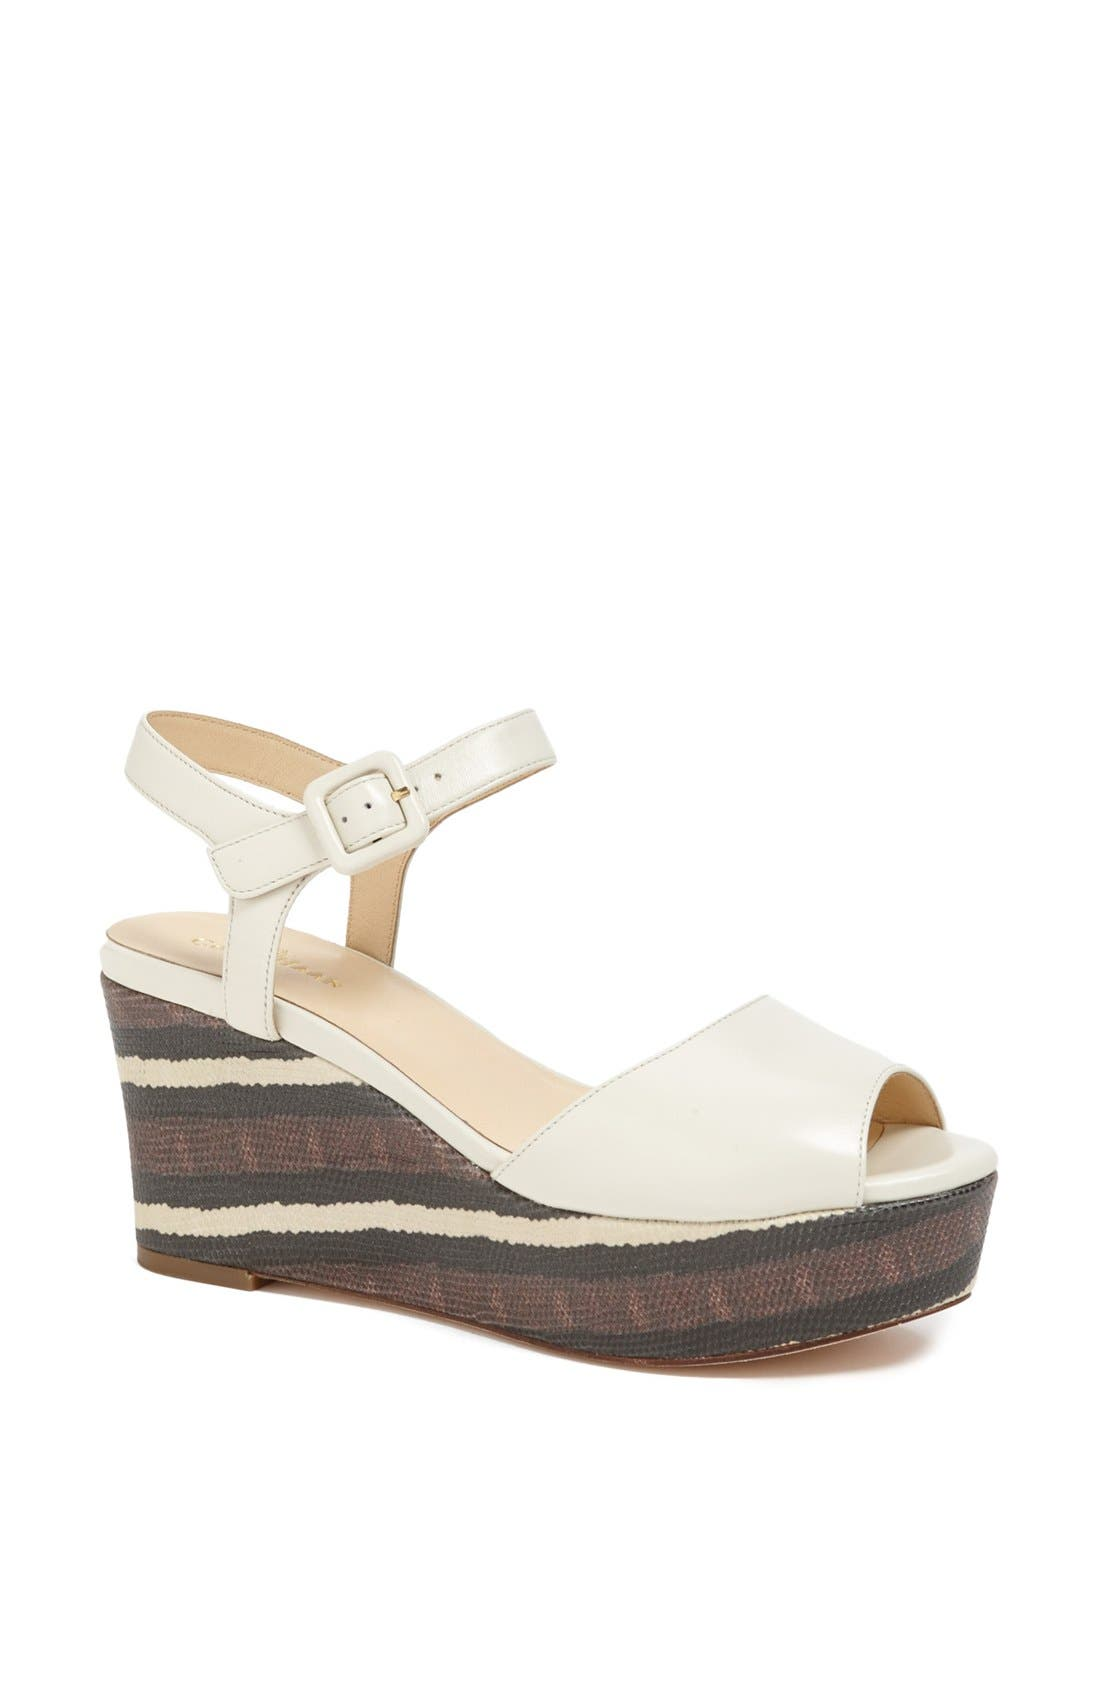 Main Image - Cole Haan 'Gillian' Platform Wedge Sandal